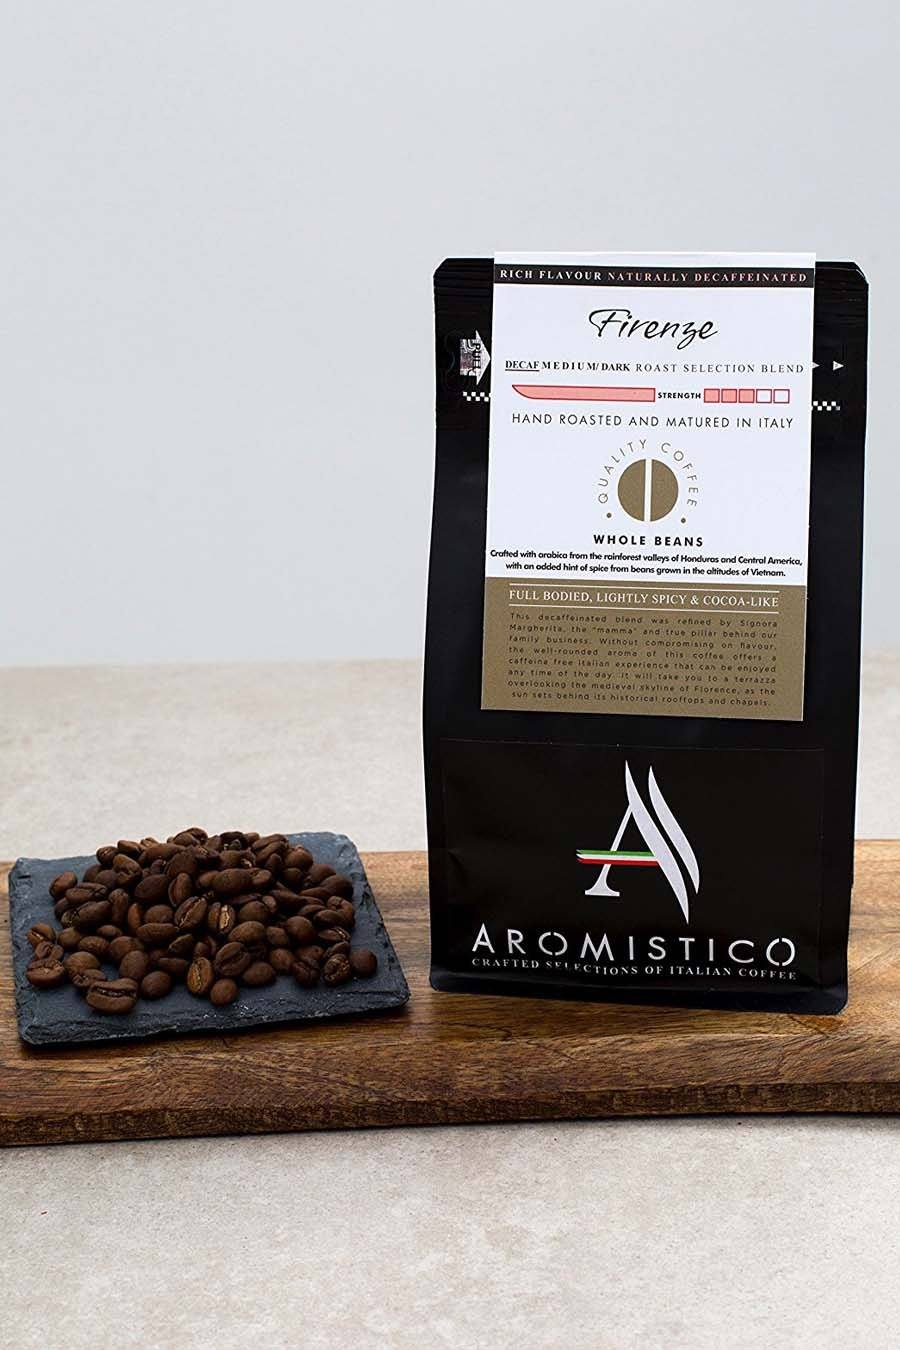 Aromistico Decaf Premium Roasted Whole Coffee Beans Firenze Blend